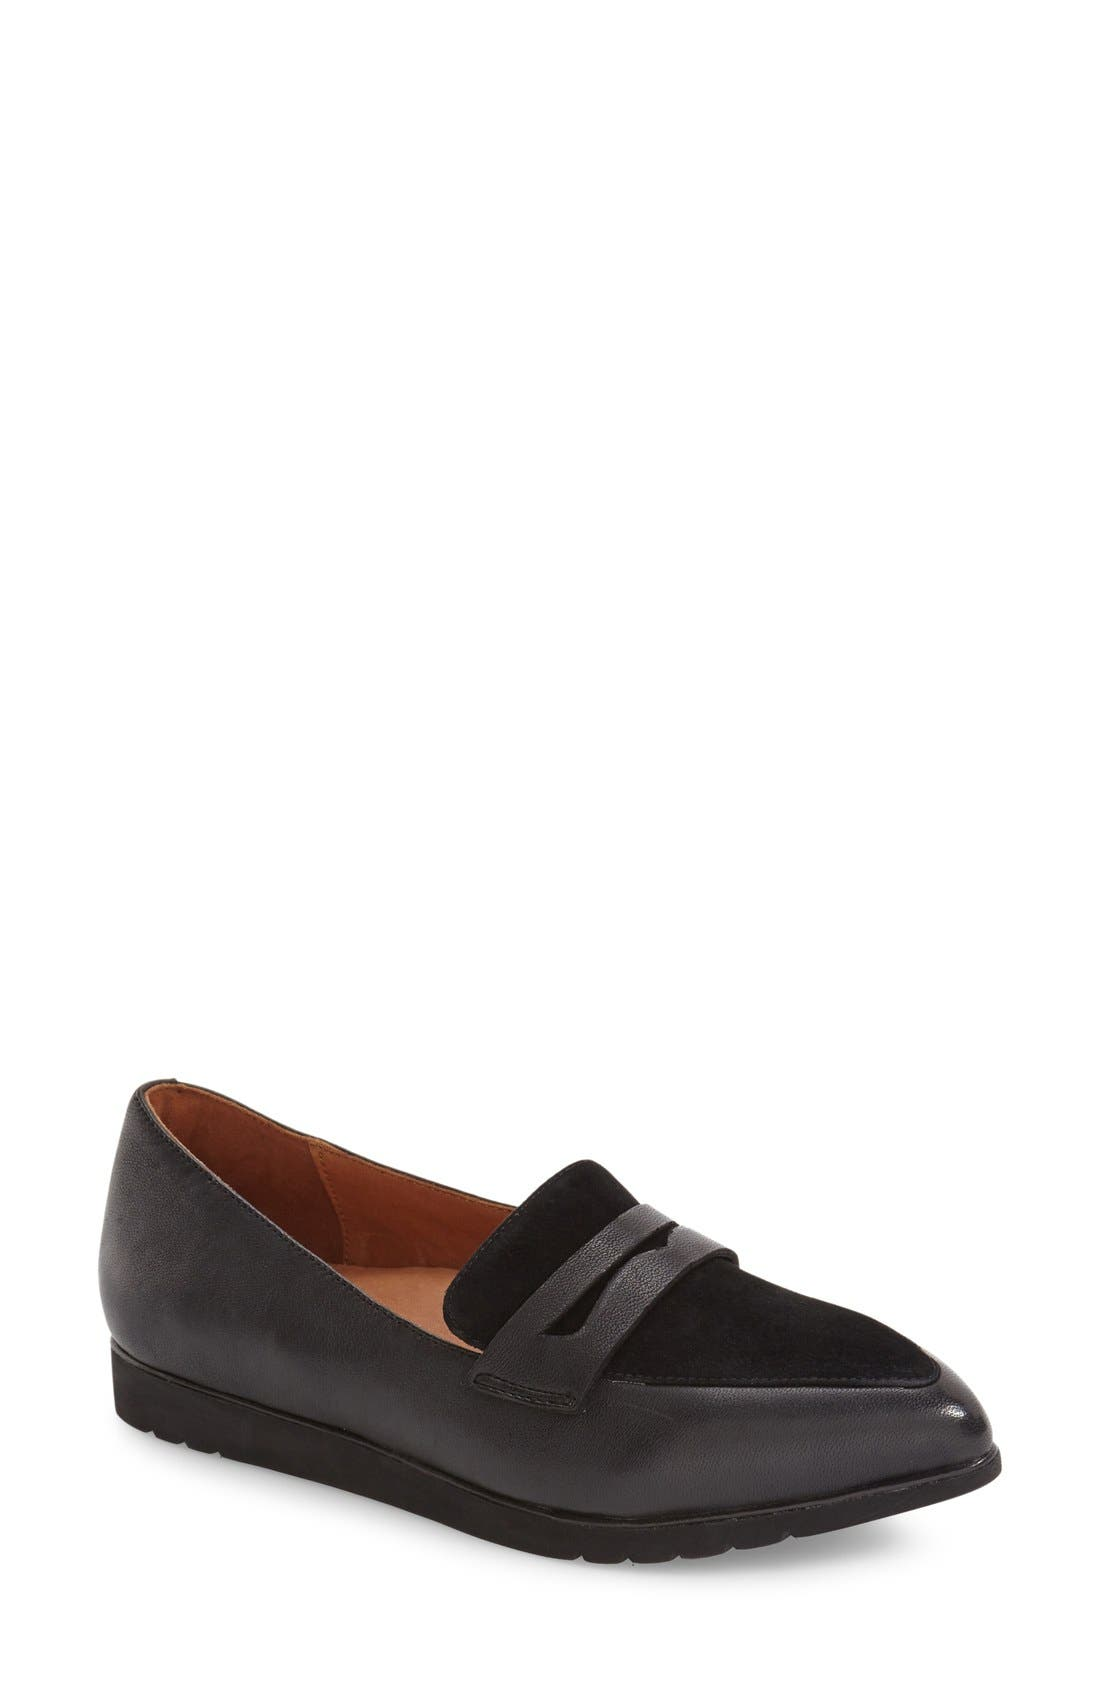 'Miamore' Pointy Toe Loafer,                         Main,                         color, 001